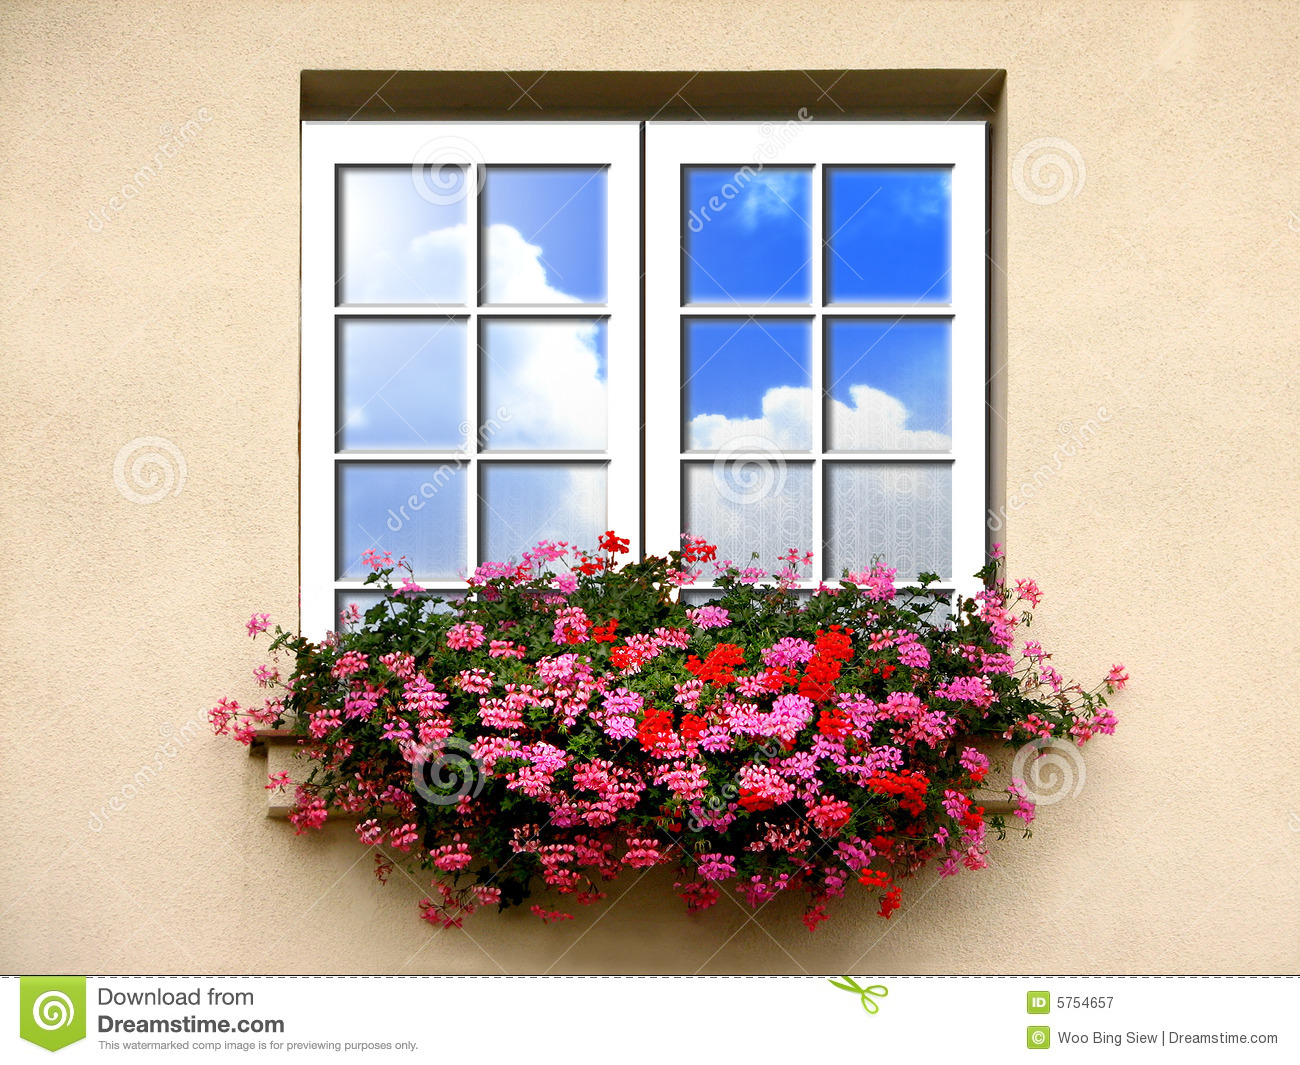 fenster mit blumen stockbild bild von wand glas drau en 5754657. Black Bedroom Furniture Sets. Home Design Ideas